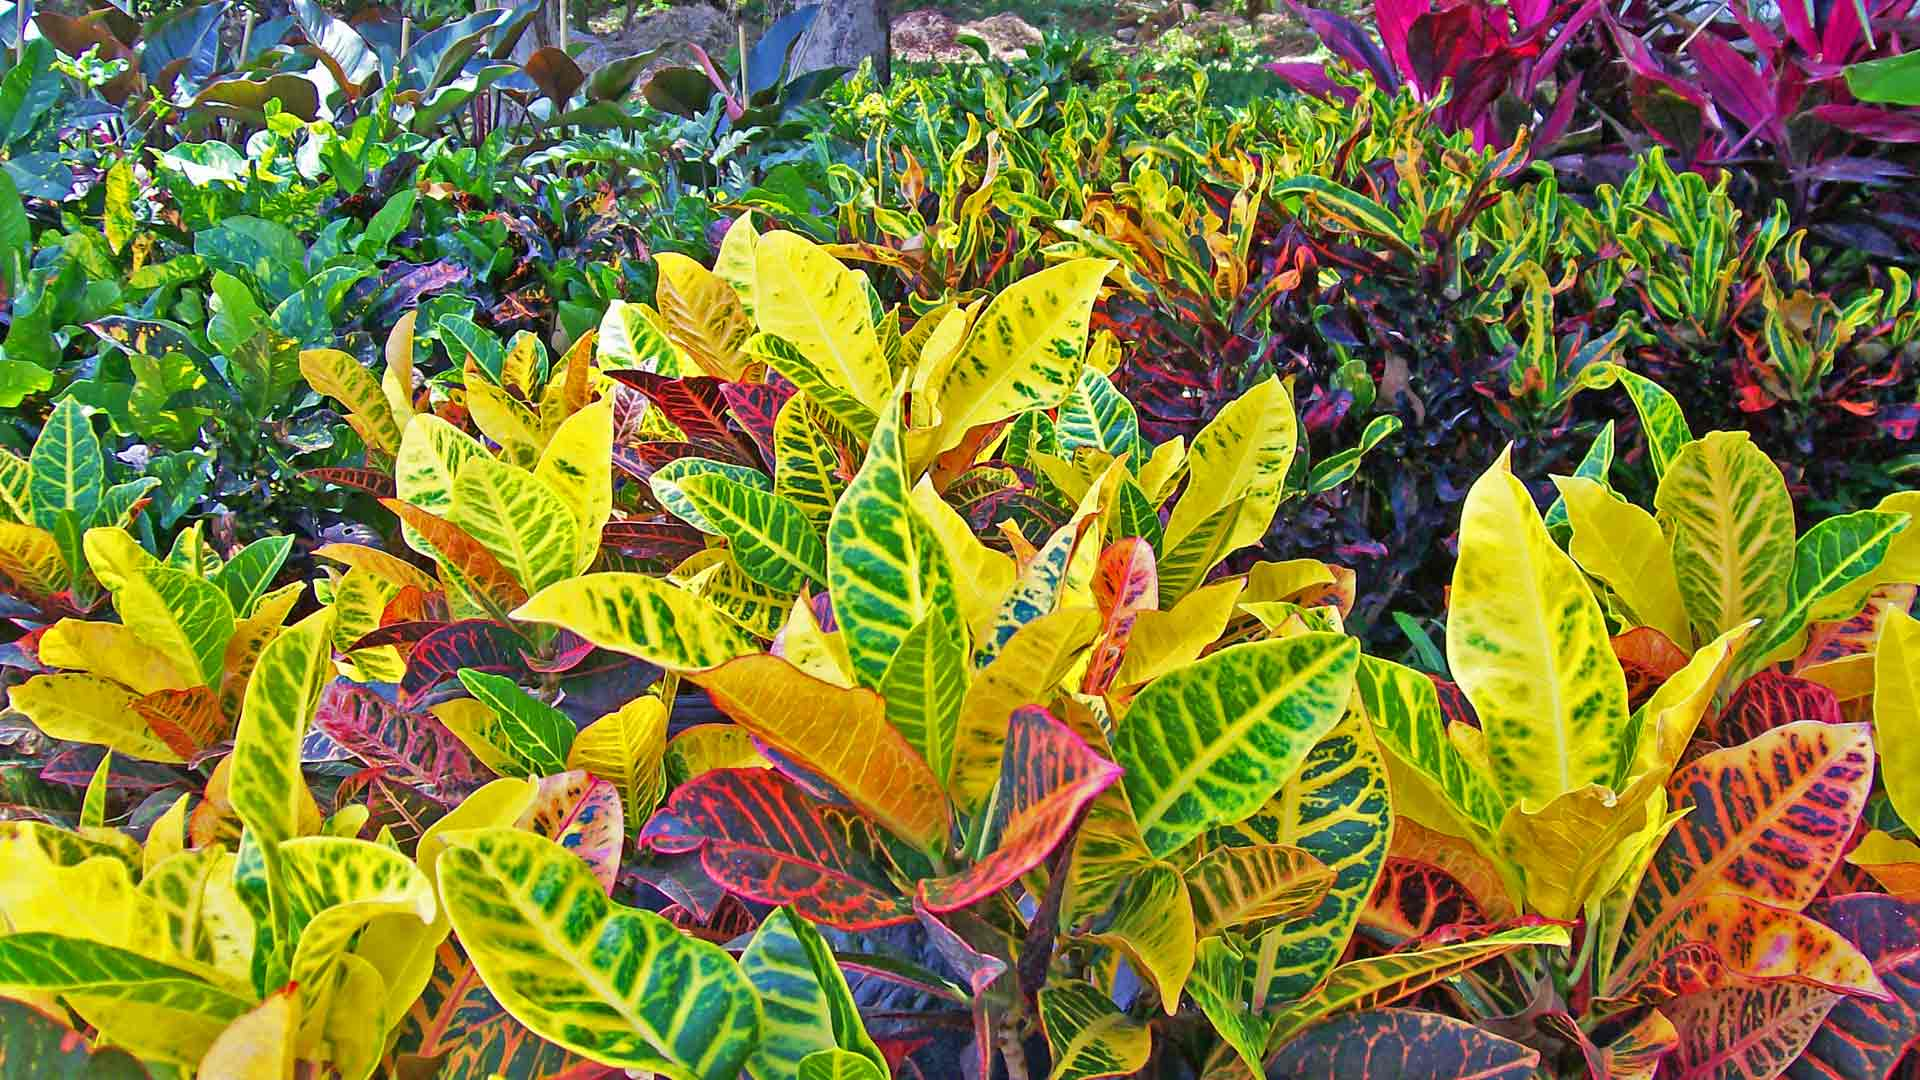 Background of Crotons for photo gallery.